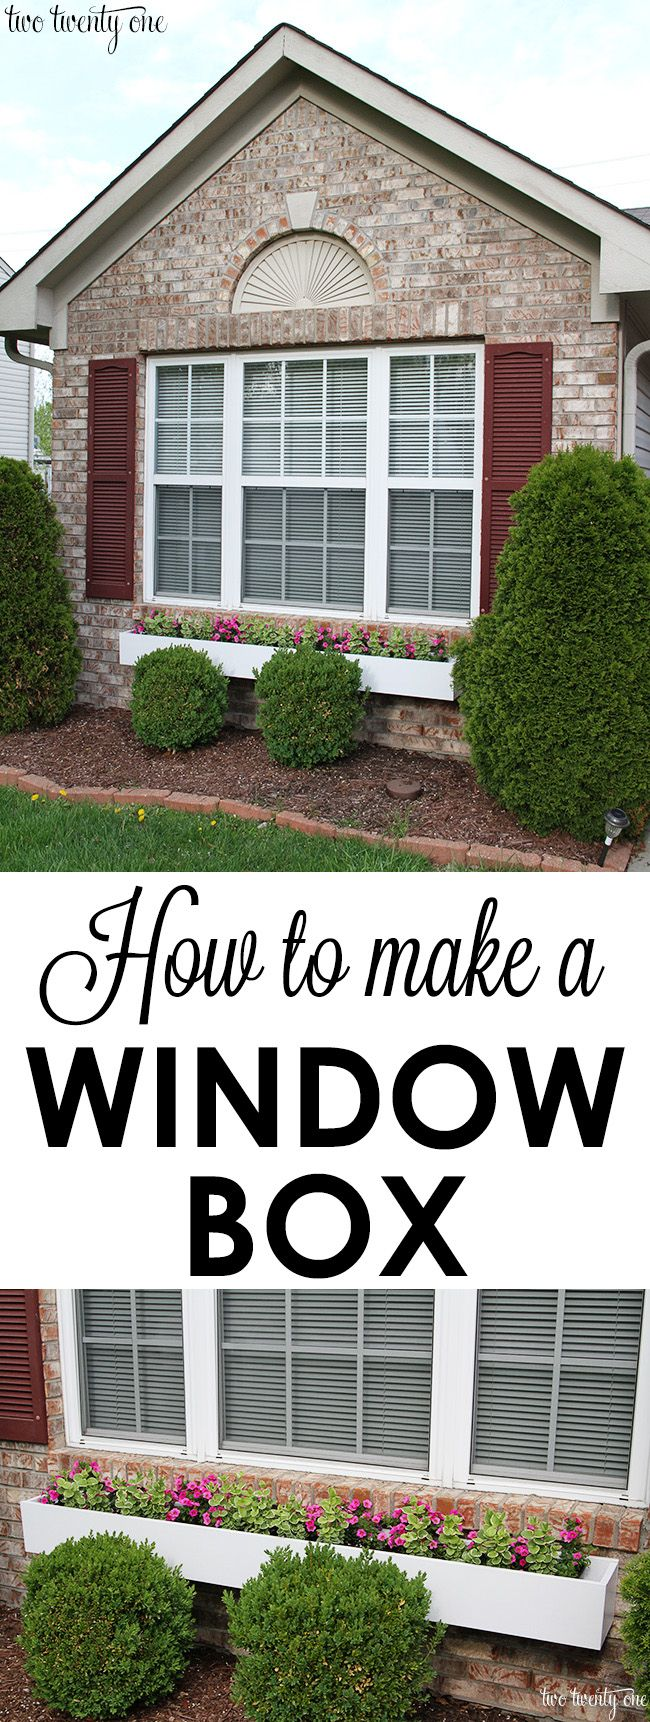 How to make a window box!  A GREAT way to add instant curb appeal to your home!